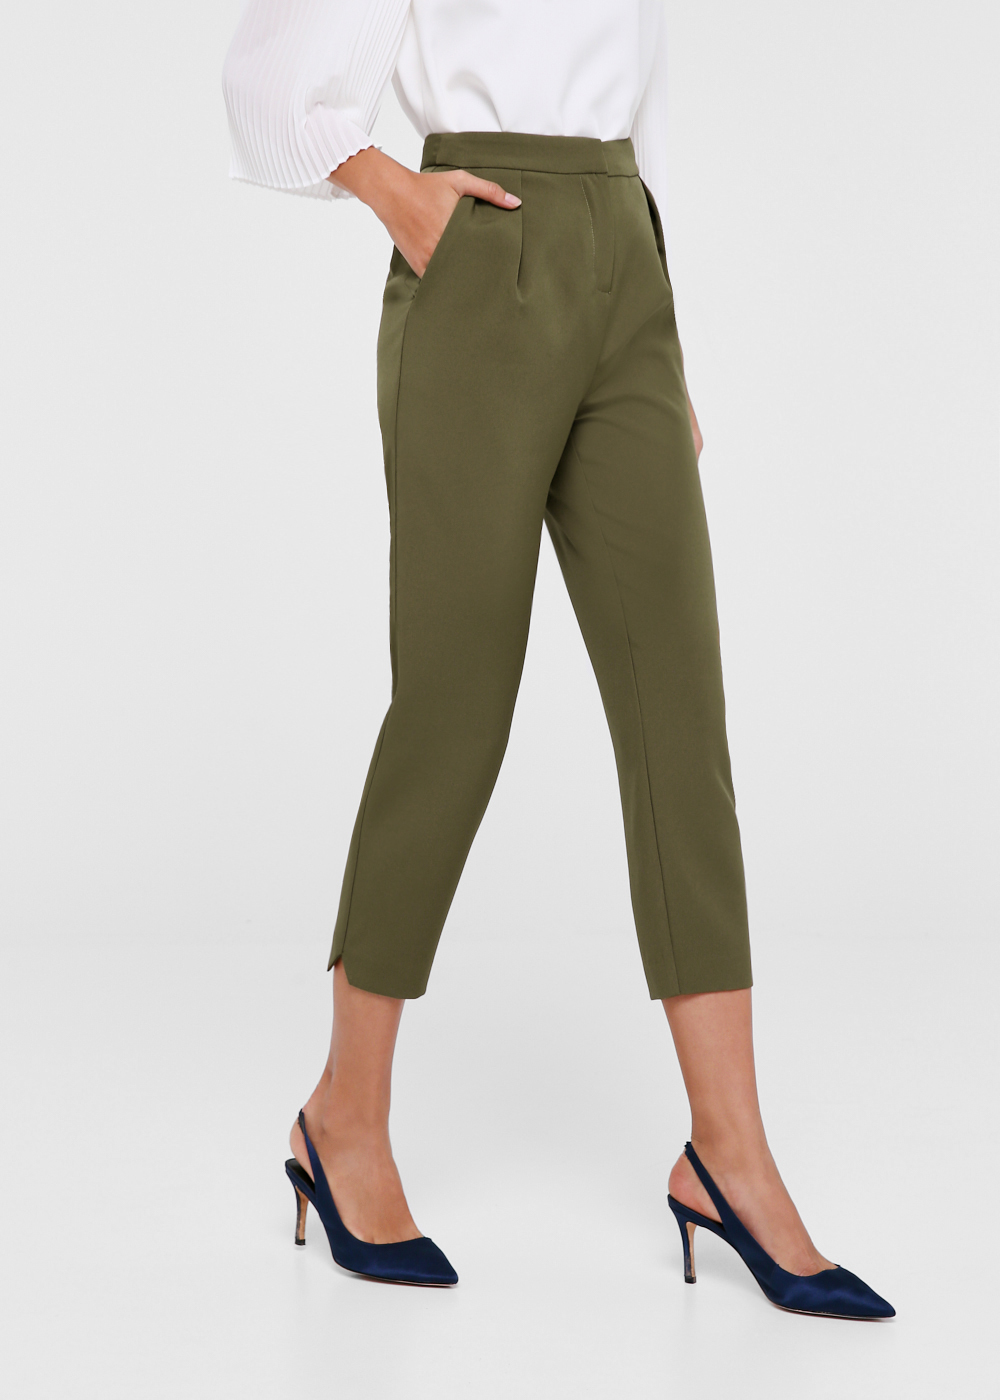 Ailana Slim Fit Crop Pants